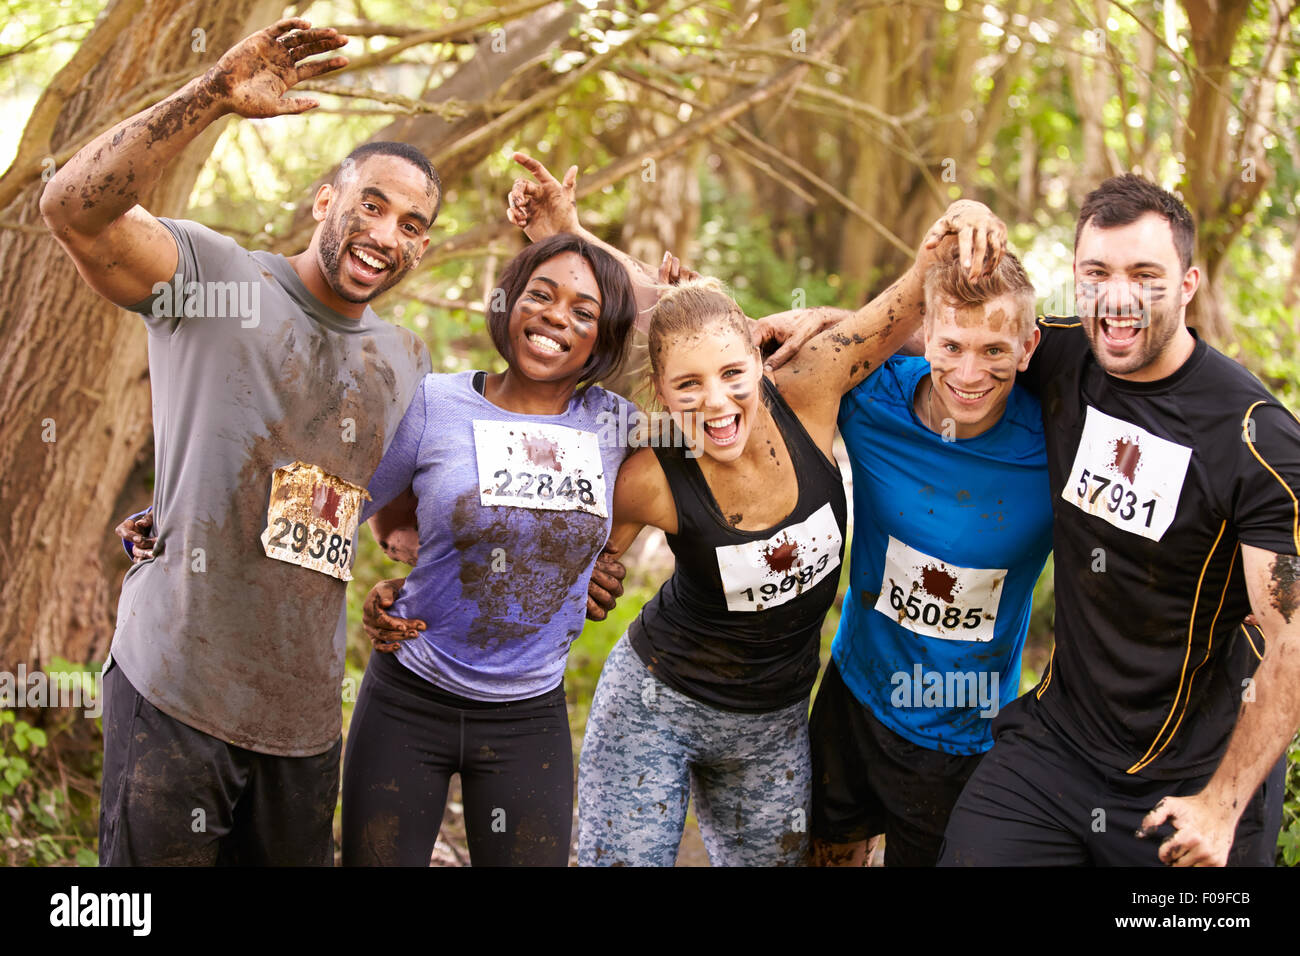 Competitors celebrate completing an endurance sports event - Stock Image